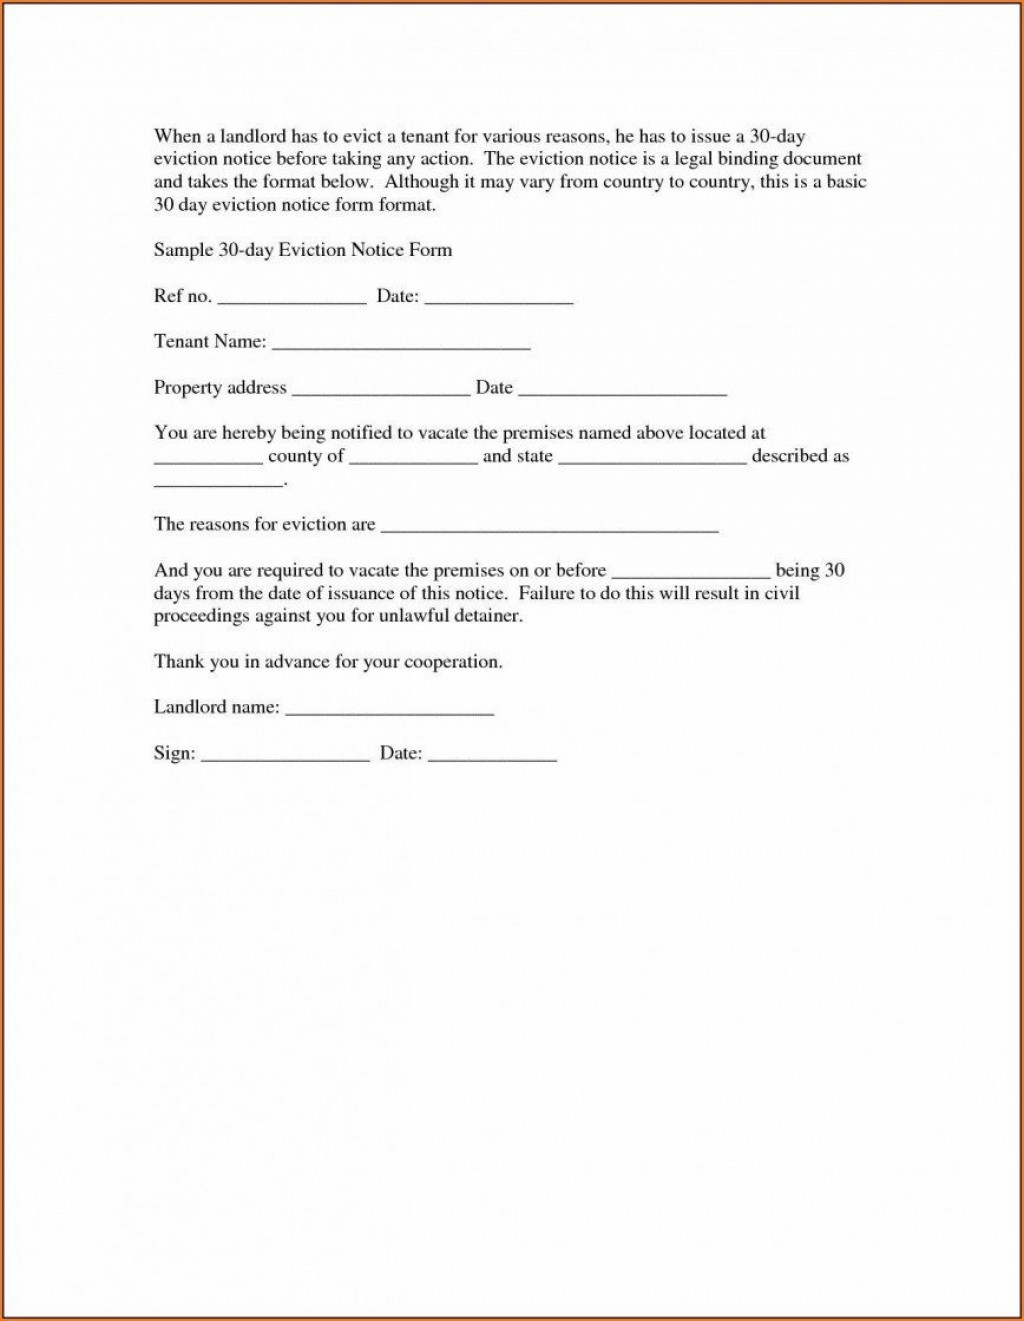 011 Fascinating 30 Day Eviction Notice Template High Def  Pdf FormLarge